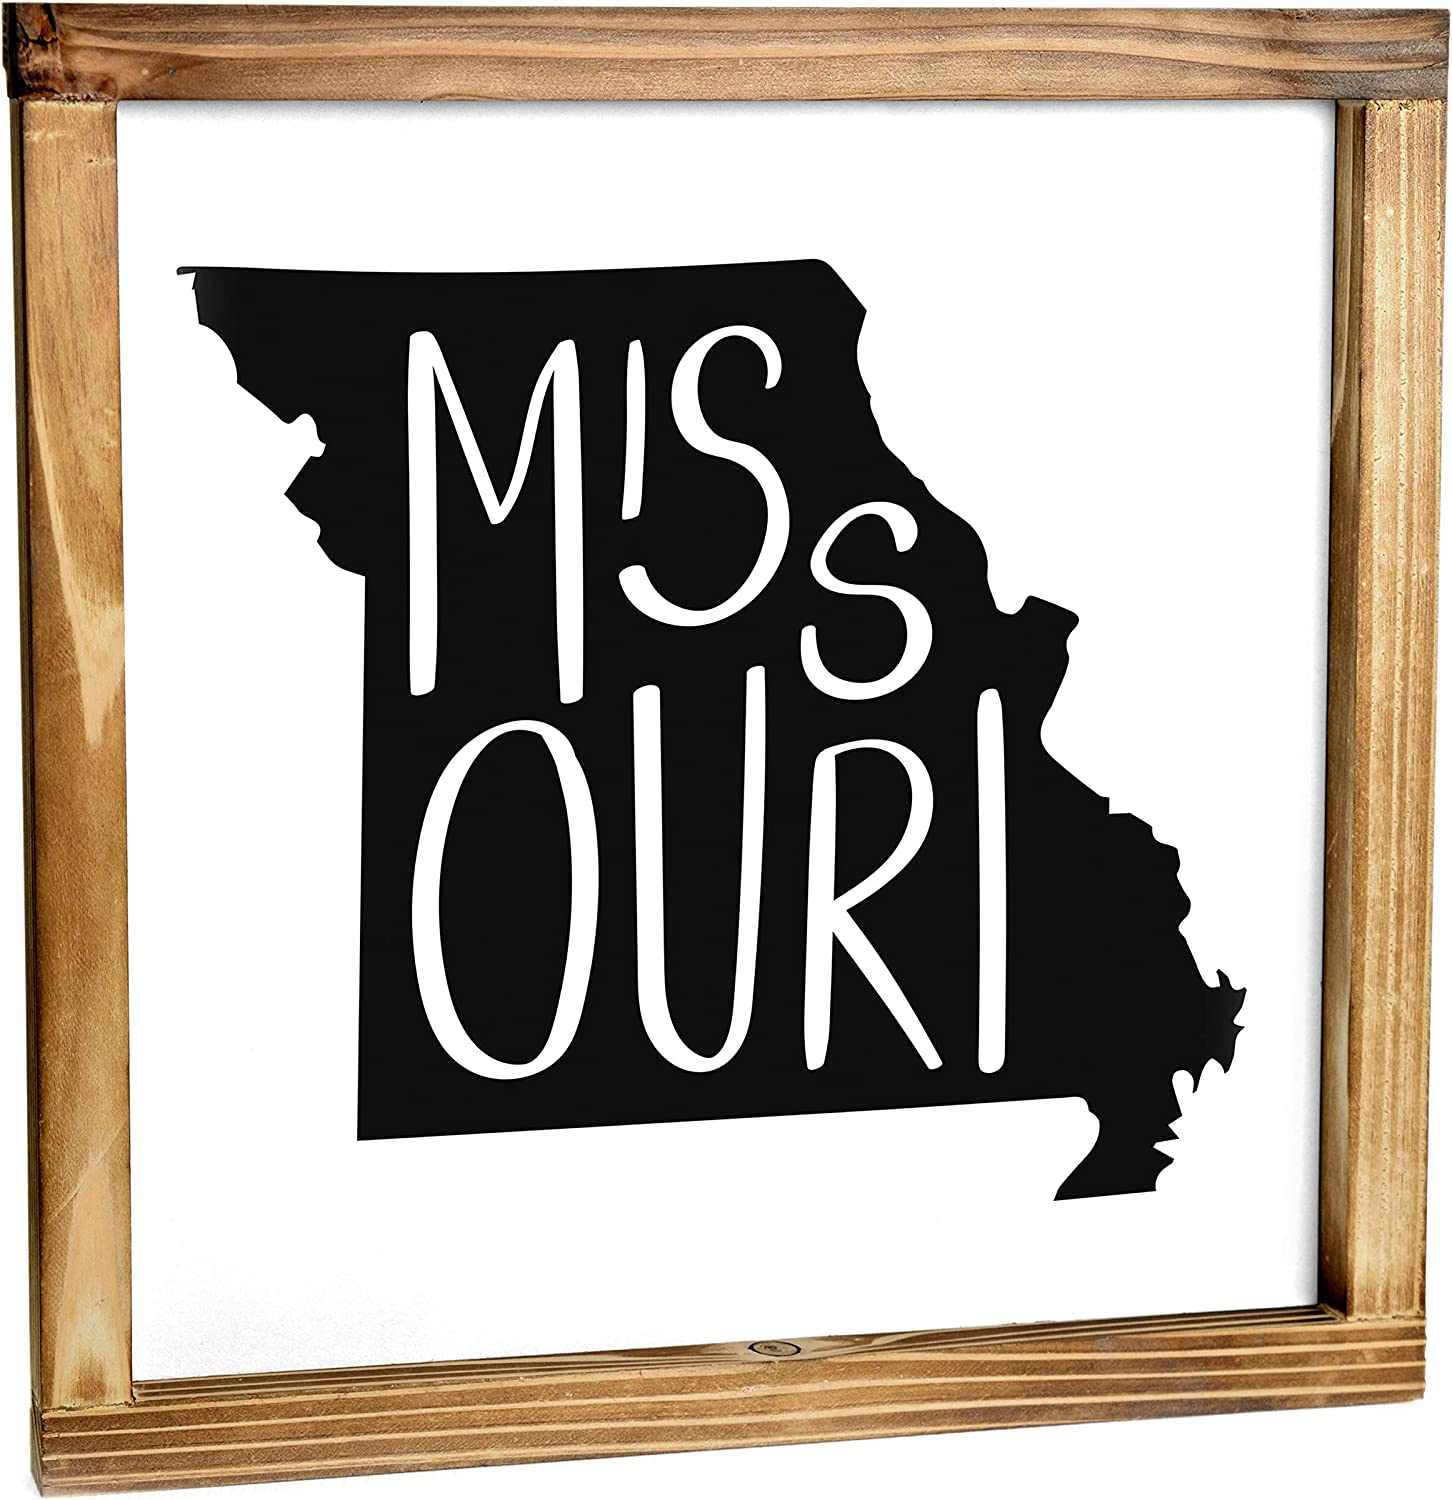 Missouri Sign - Rustic Farmhouse Decor For The Home - Missouri State Sign, Modern Farmhouse State Gift, Missouri Wall Decor, State Souvenir, Rustic Home Decor Sign With Solid Wood Frame 12x12 Inch